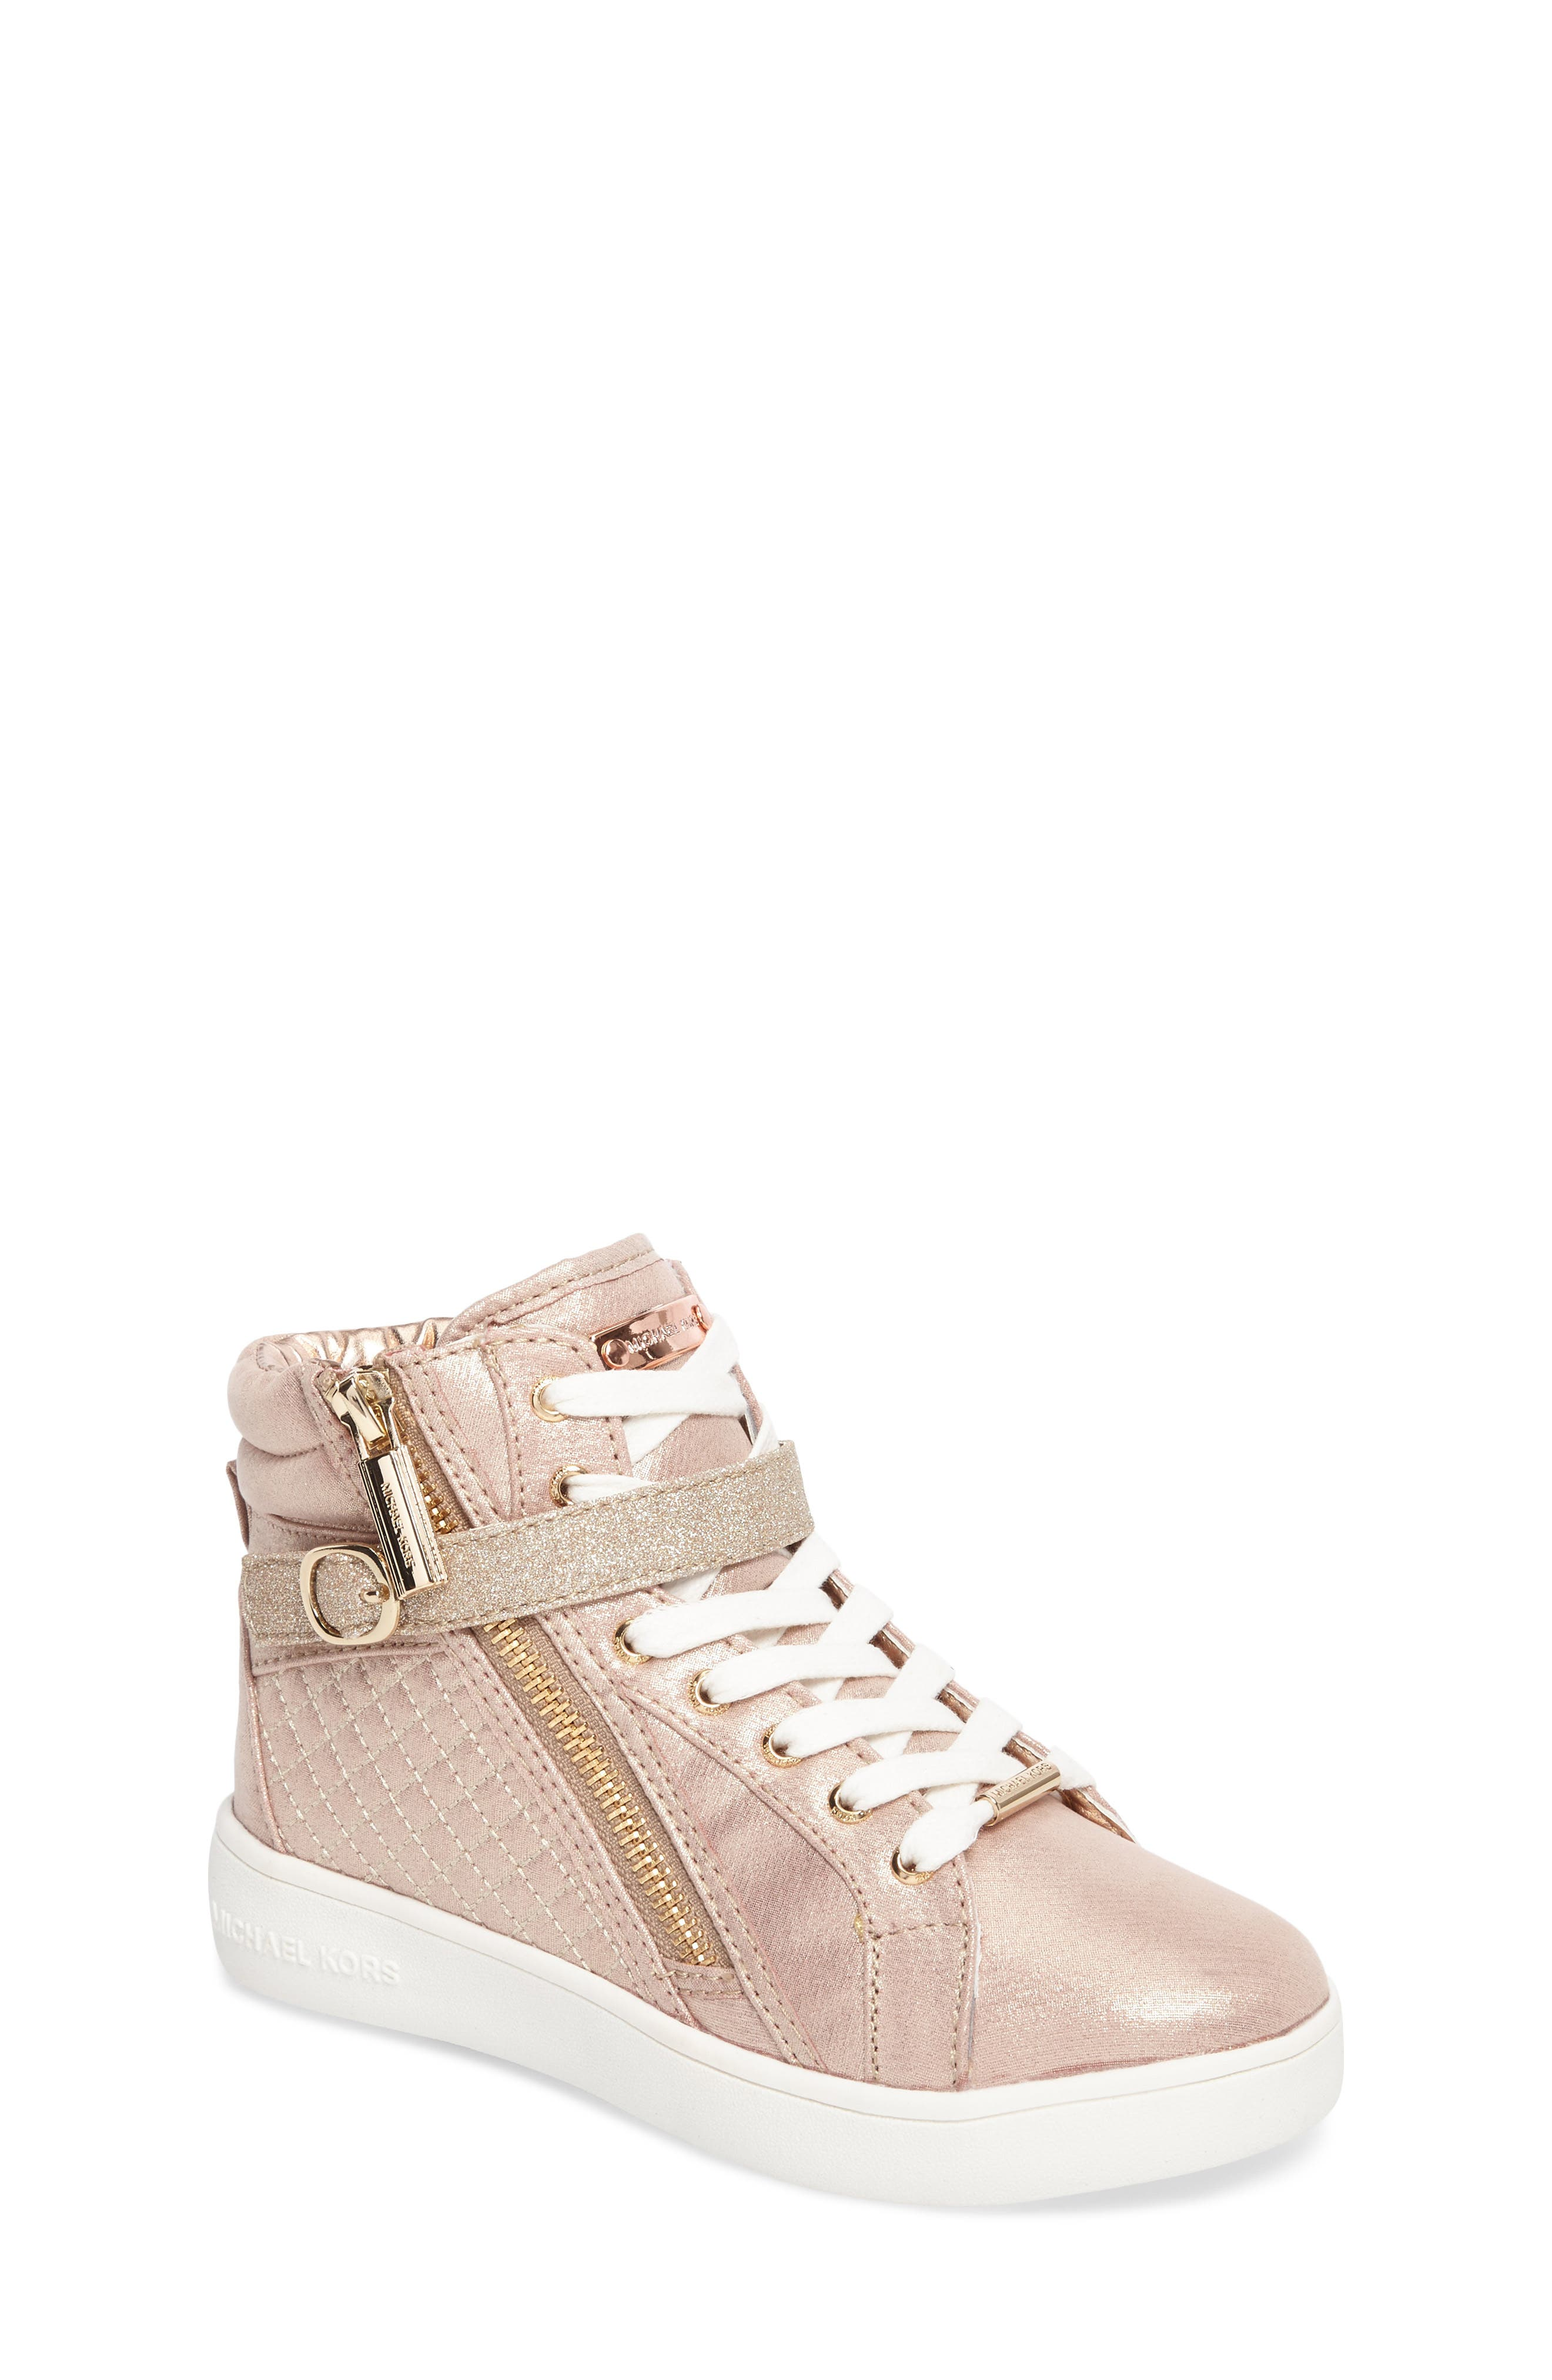 Ivy Rio Glittery High Top Sneaker,                             Main thumbnail 1, color,                             Rose Gold